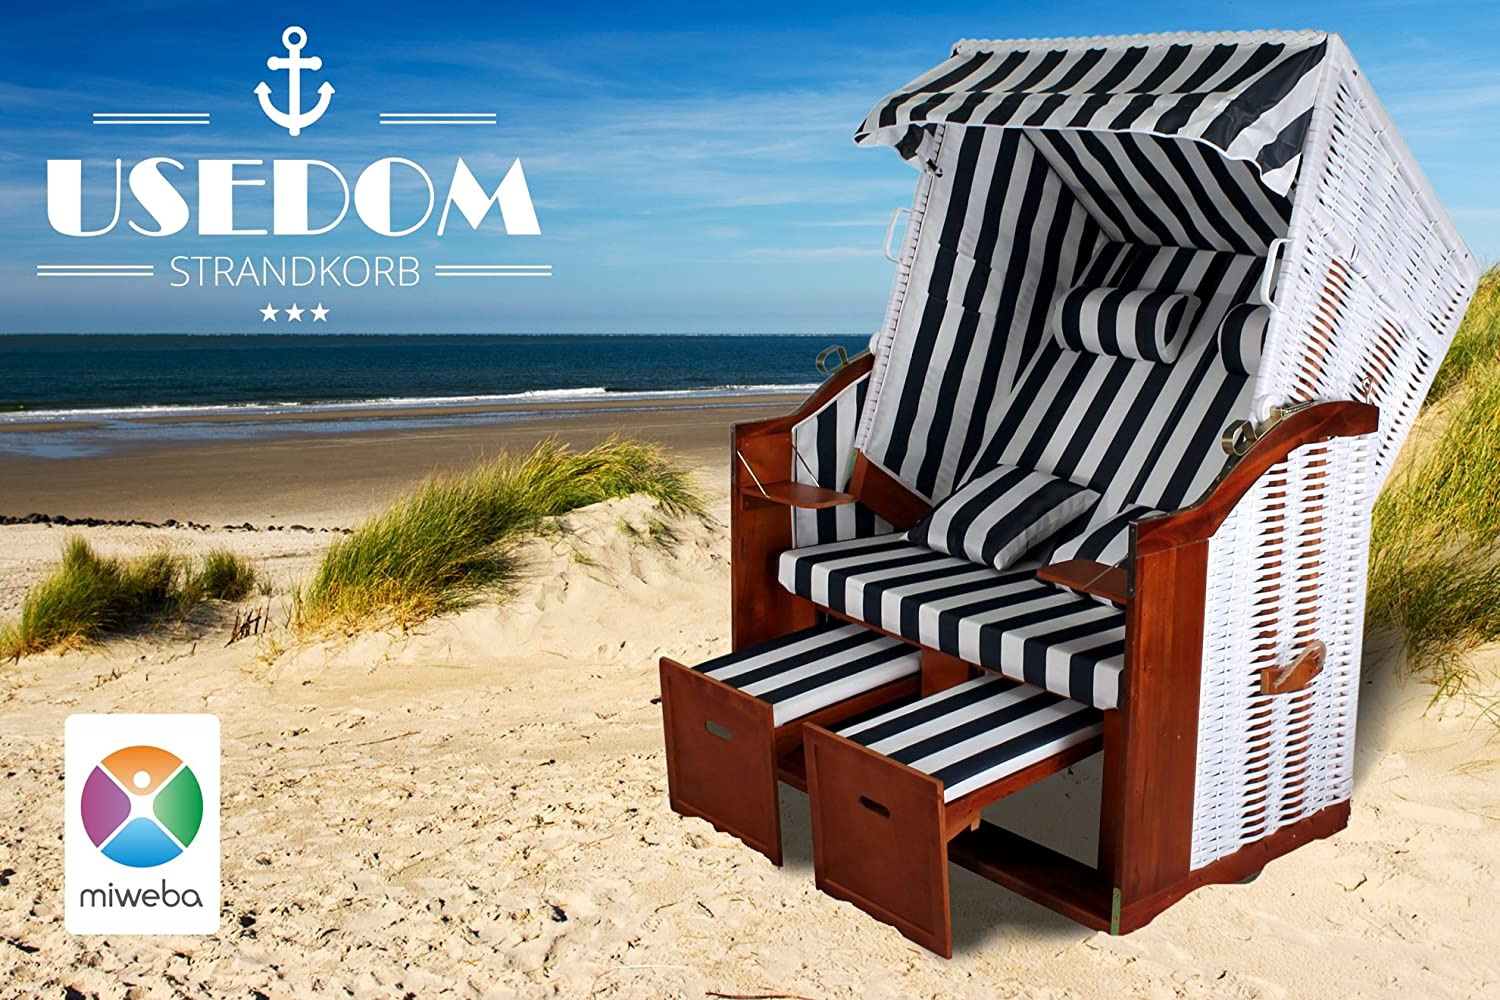 rattan strandkorb xl usedom miweba ostsee volllieger inklusive abdeckplane gartenm bel terasse. Black Bedroom Furniture Sets. Home Design Ideas